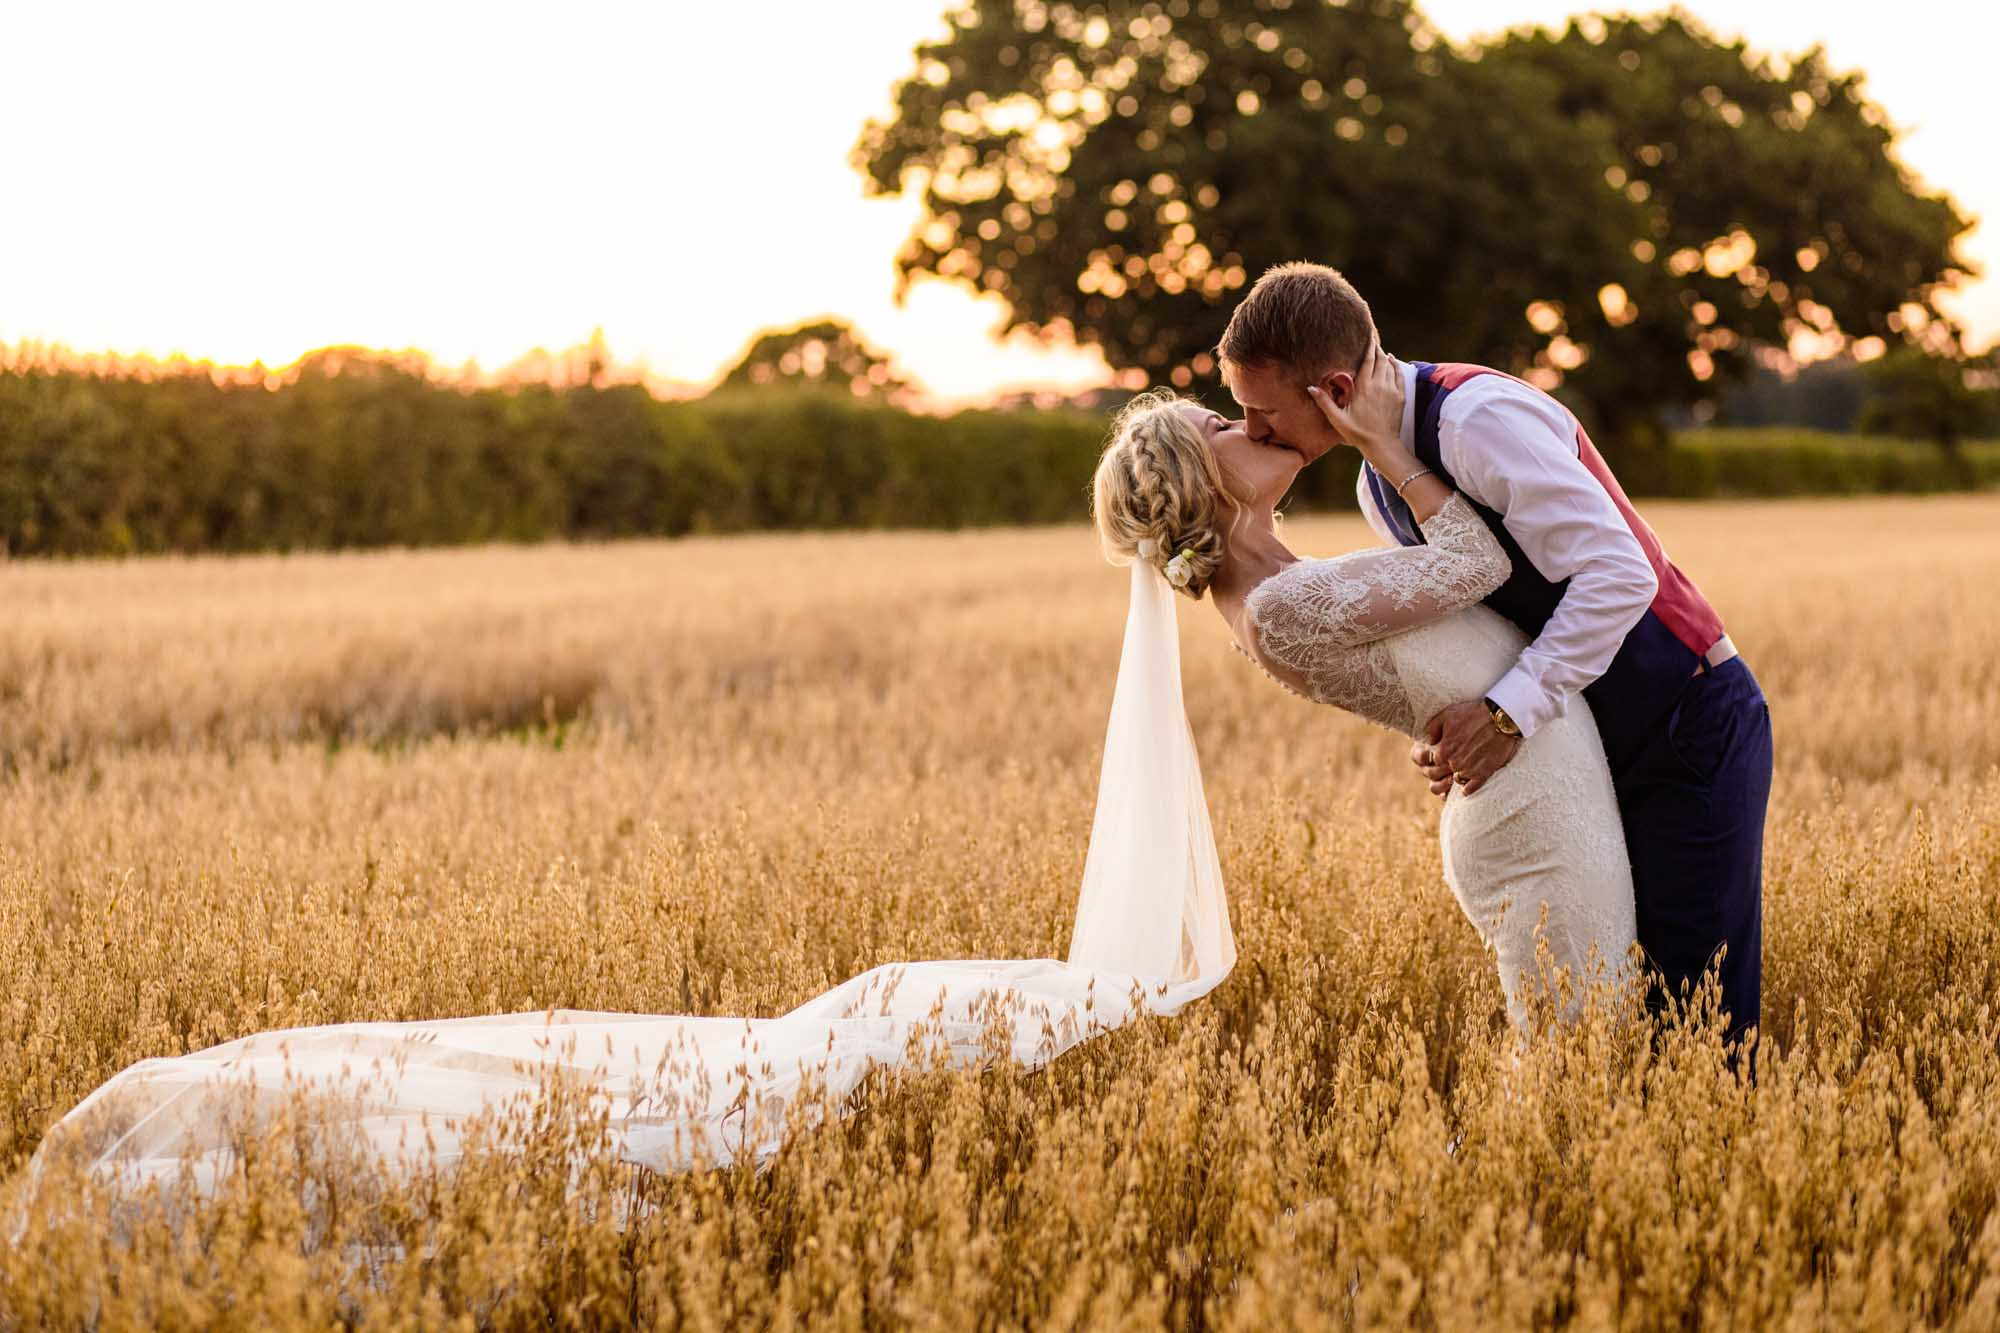 Stock Farm Wedding Barn Sunset Photographs